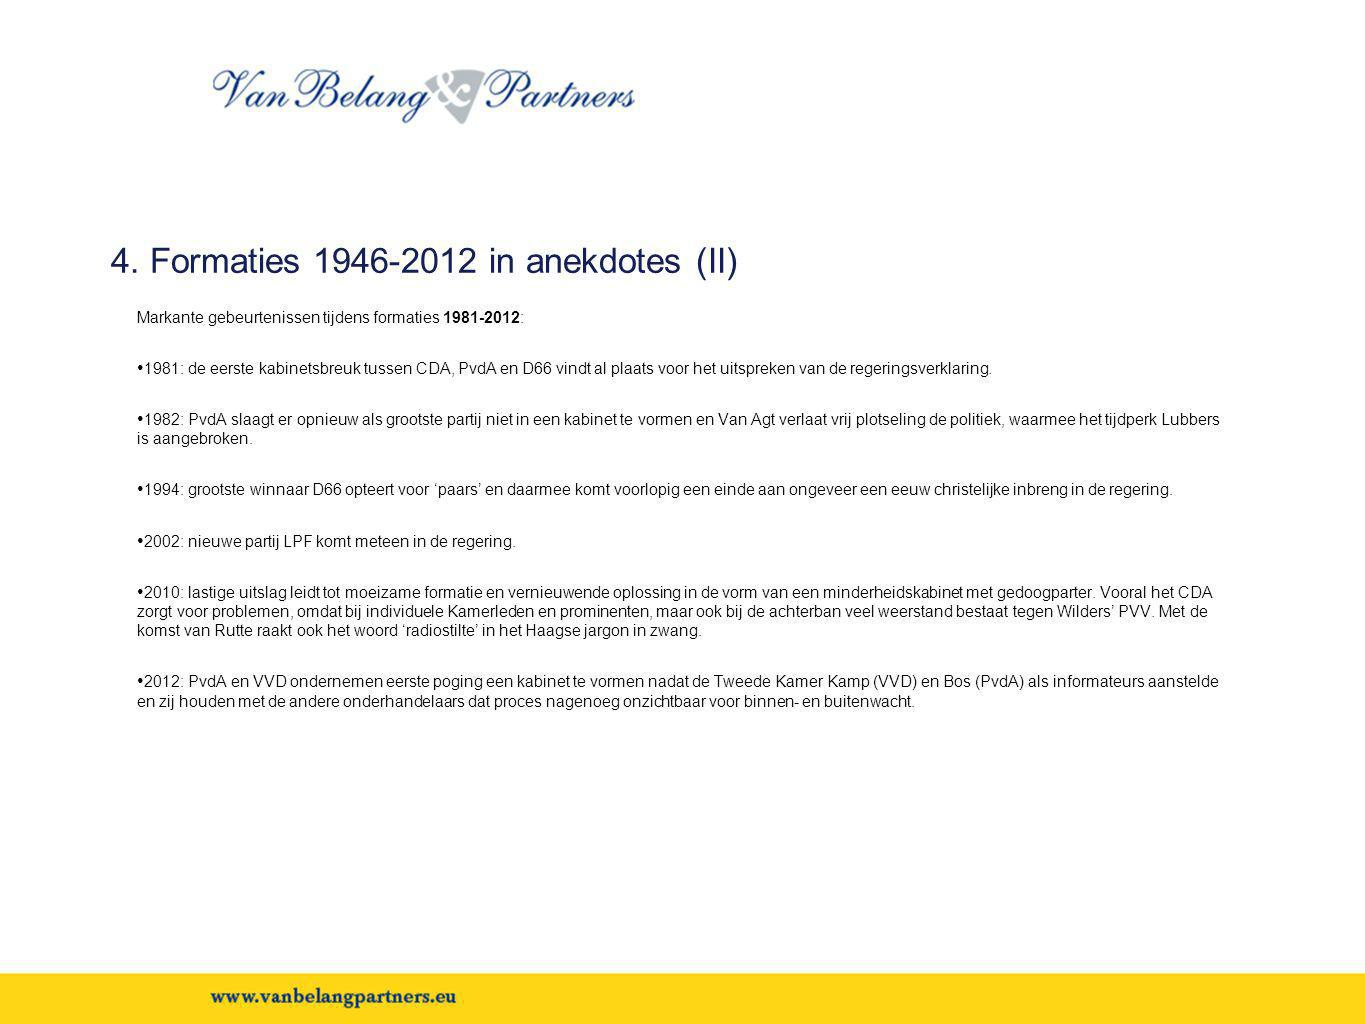 4. Formaties 1946-2012 in anekdotes (II)